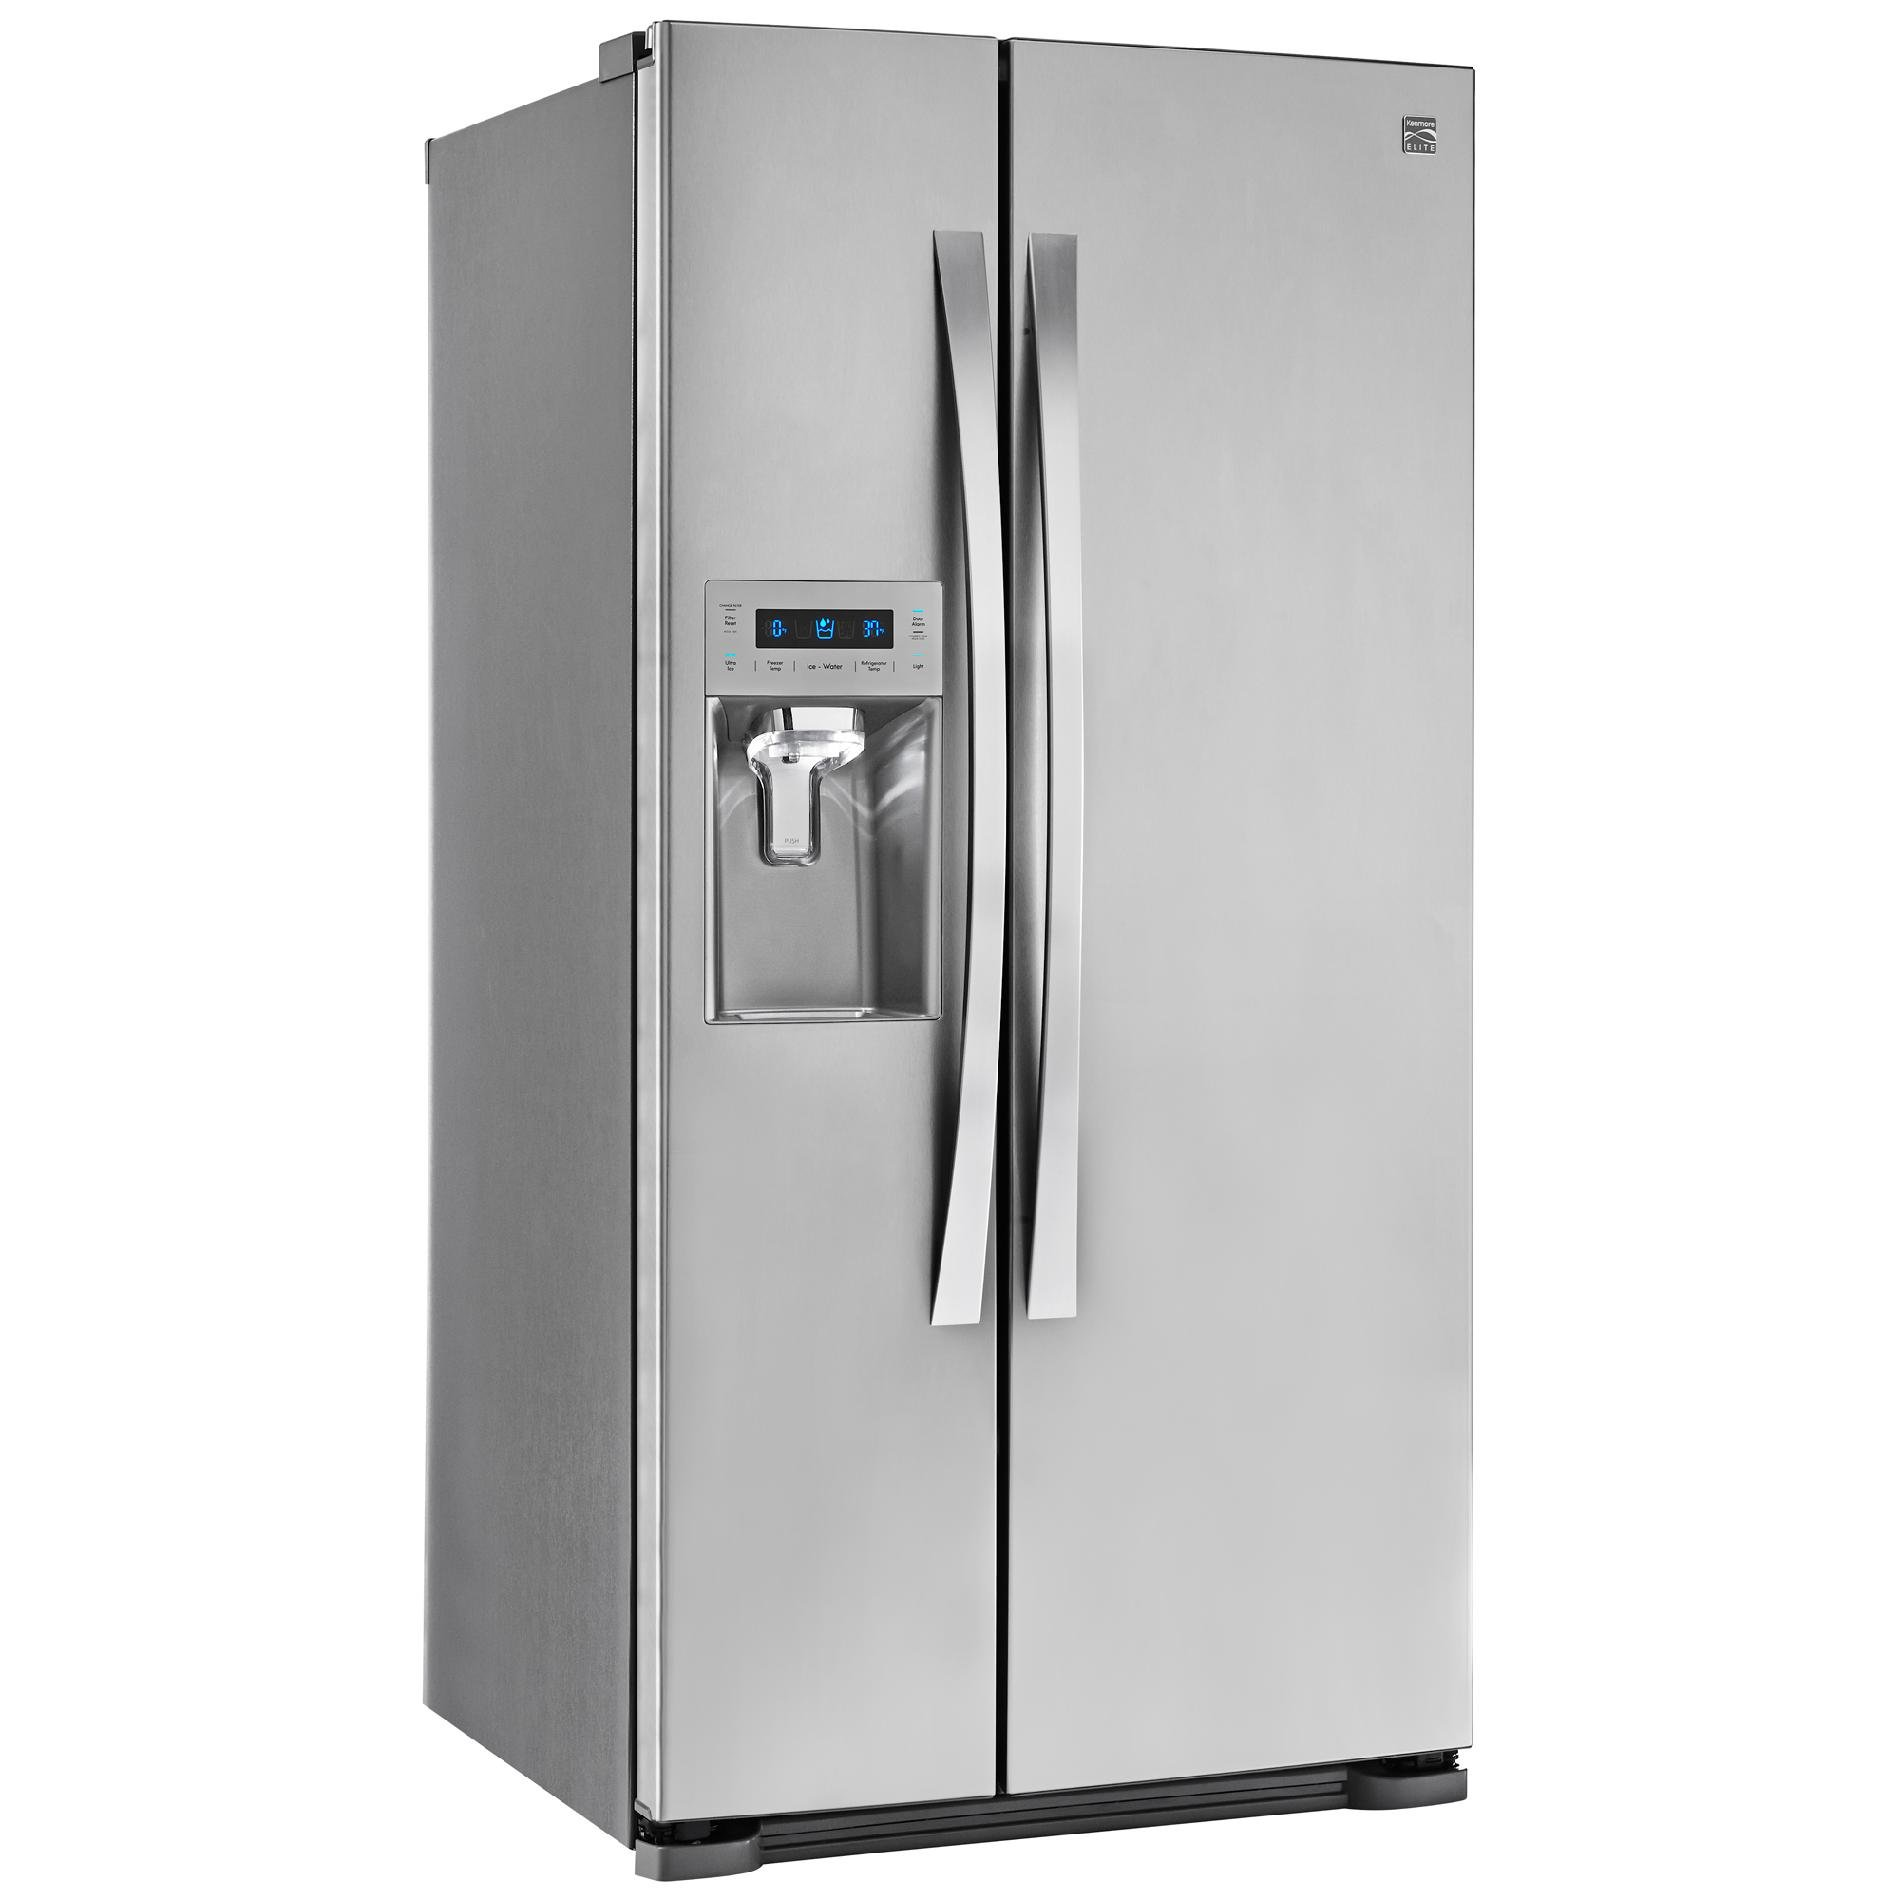 Kenmore Elite 51823 21.9 cu. ft. Side-by-Side Refrigerator in Stainless Steel, includes delivery and hookup (Available in select cities only) by Kenmore (Image #4)